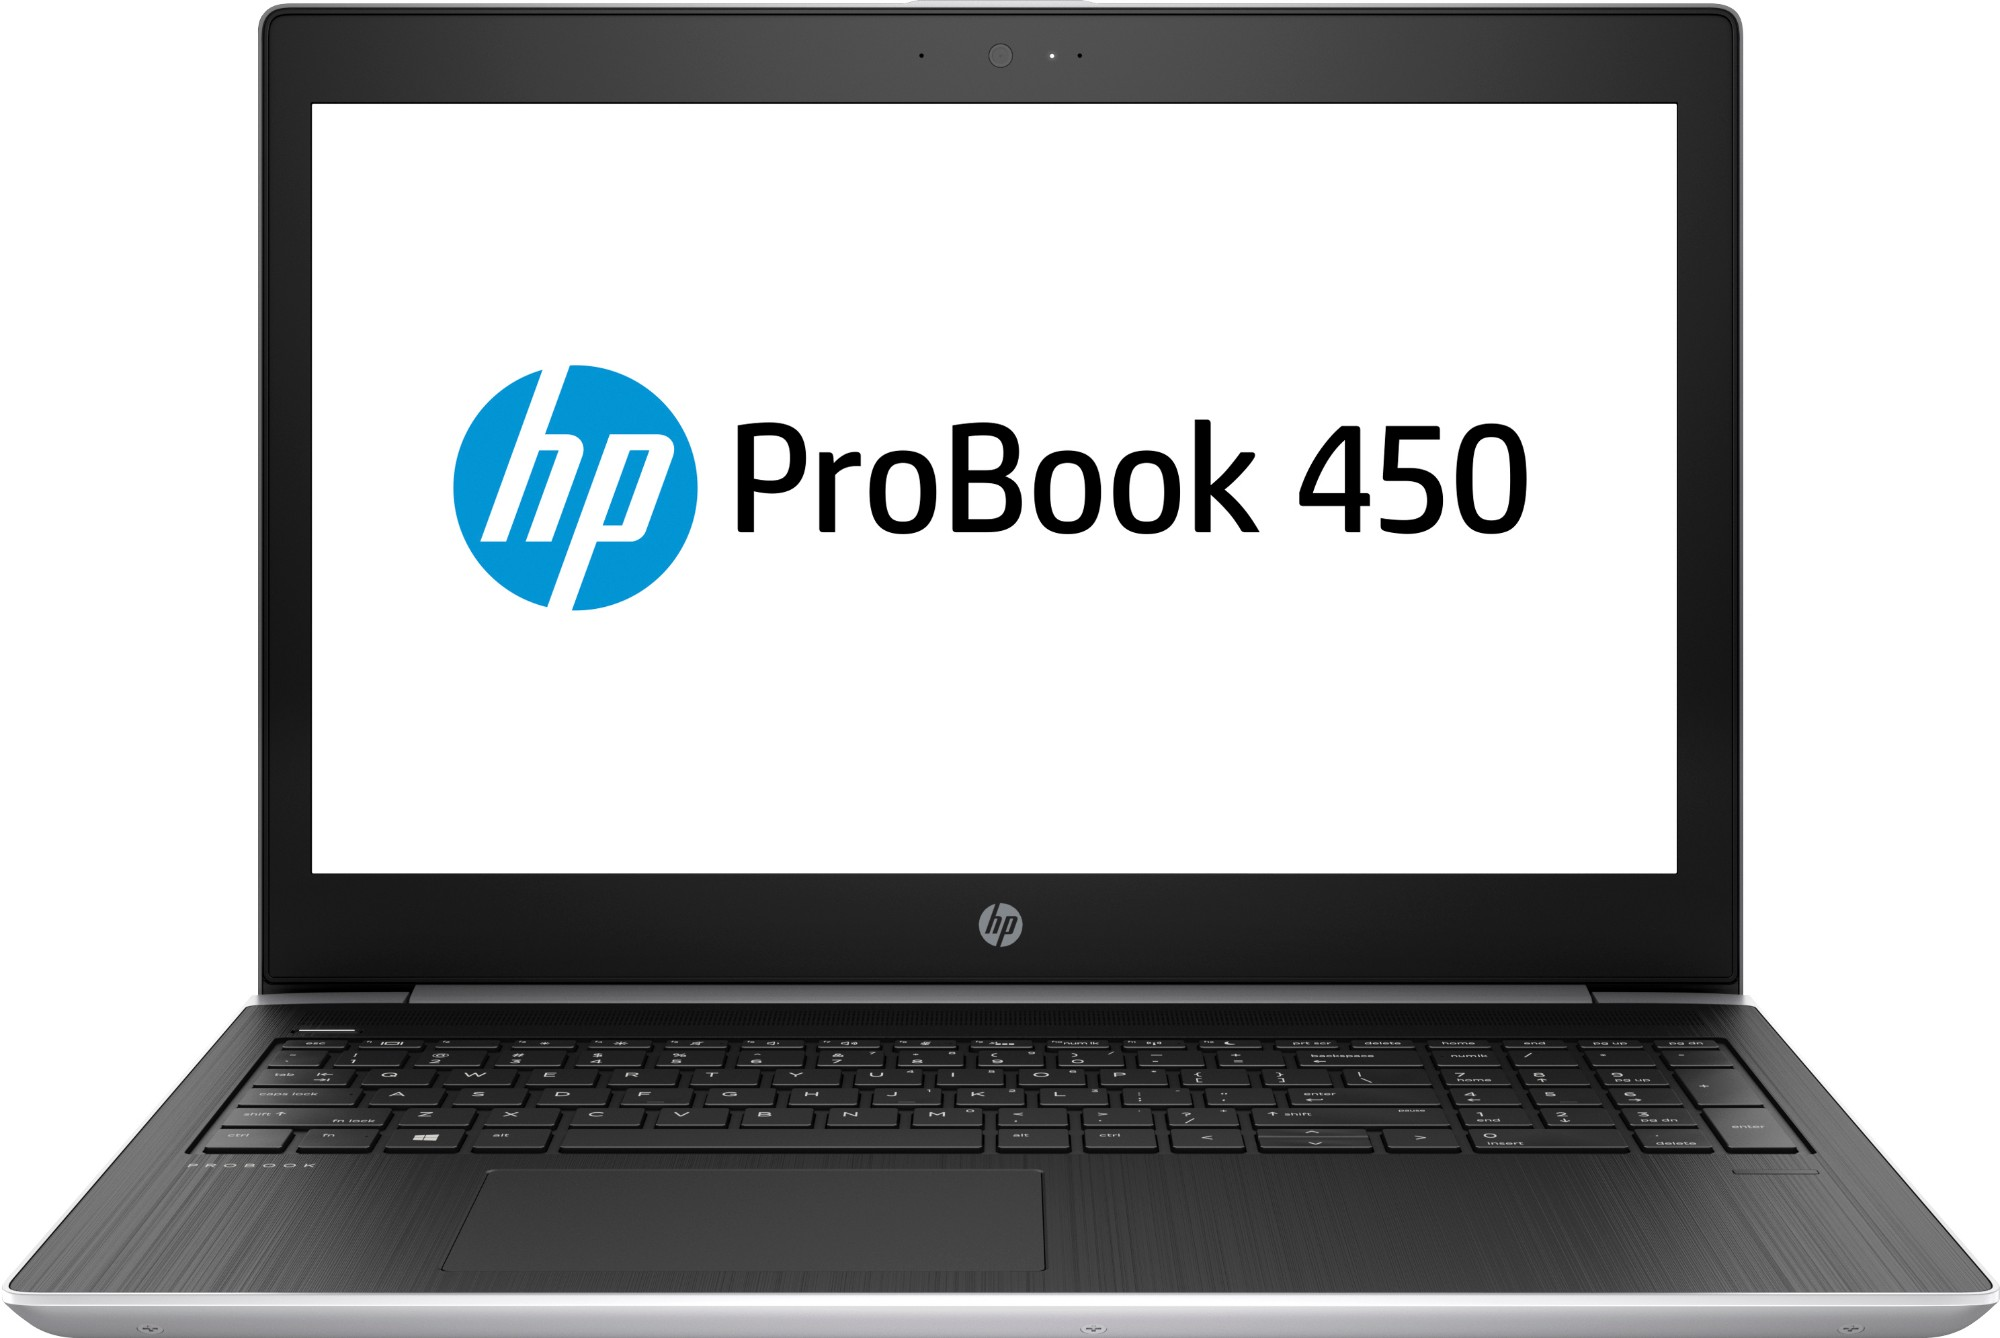 "HP ProBook 450 G5 2.40GHz i3-7100U 7th gen Intel® Core™ i3 15.6"" 1366 x 768pixels Black, Silver Notebook"